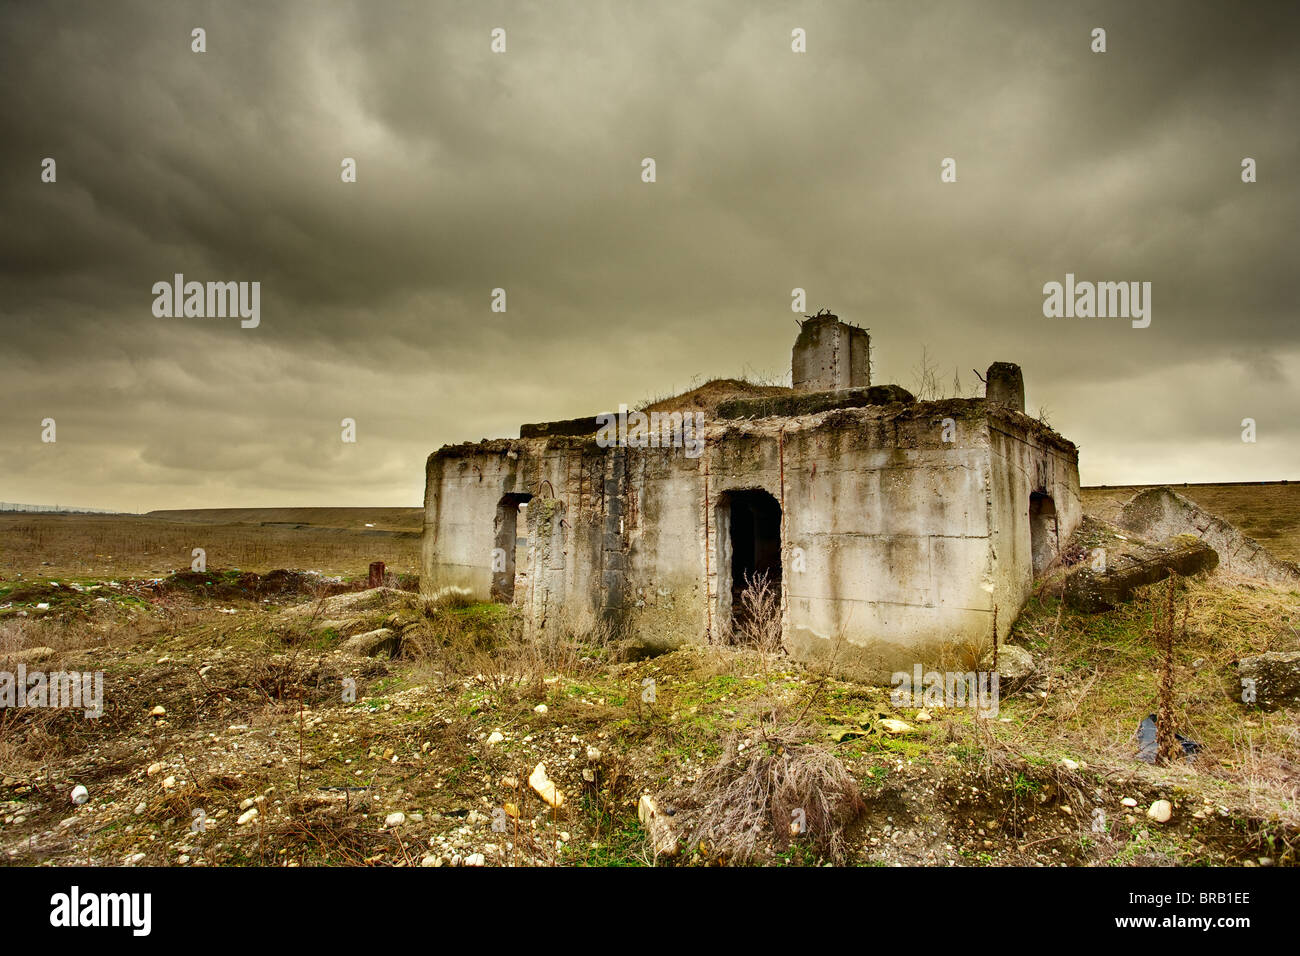 Landscape with a decrepit ruin of a building under moody sky - Stock Image